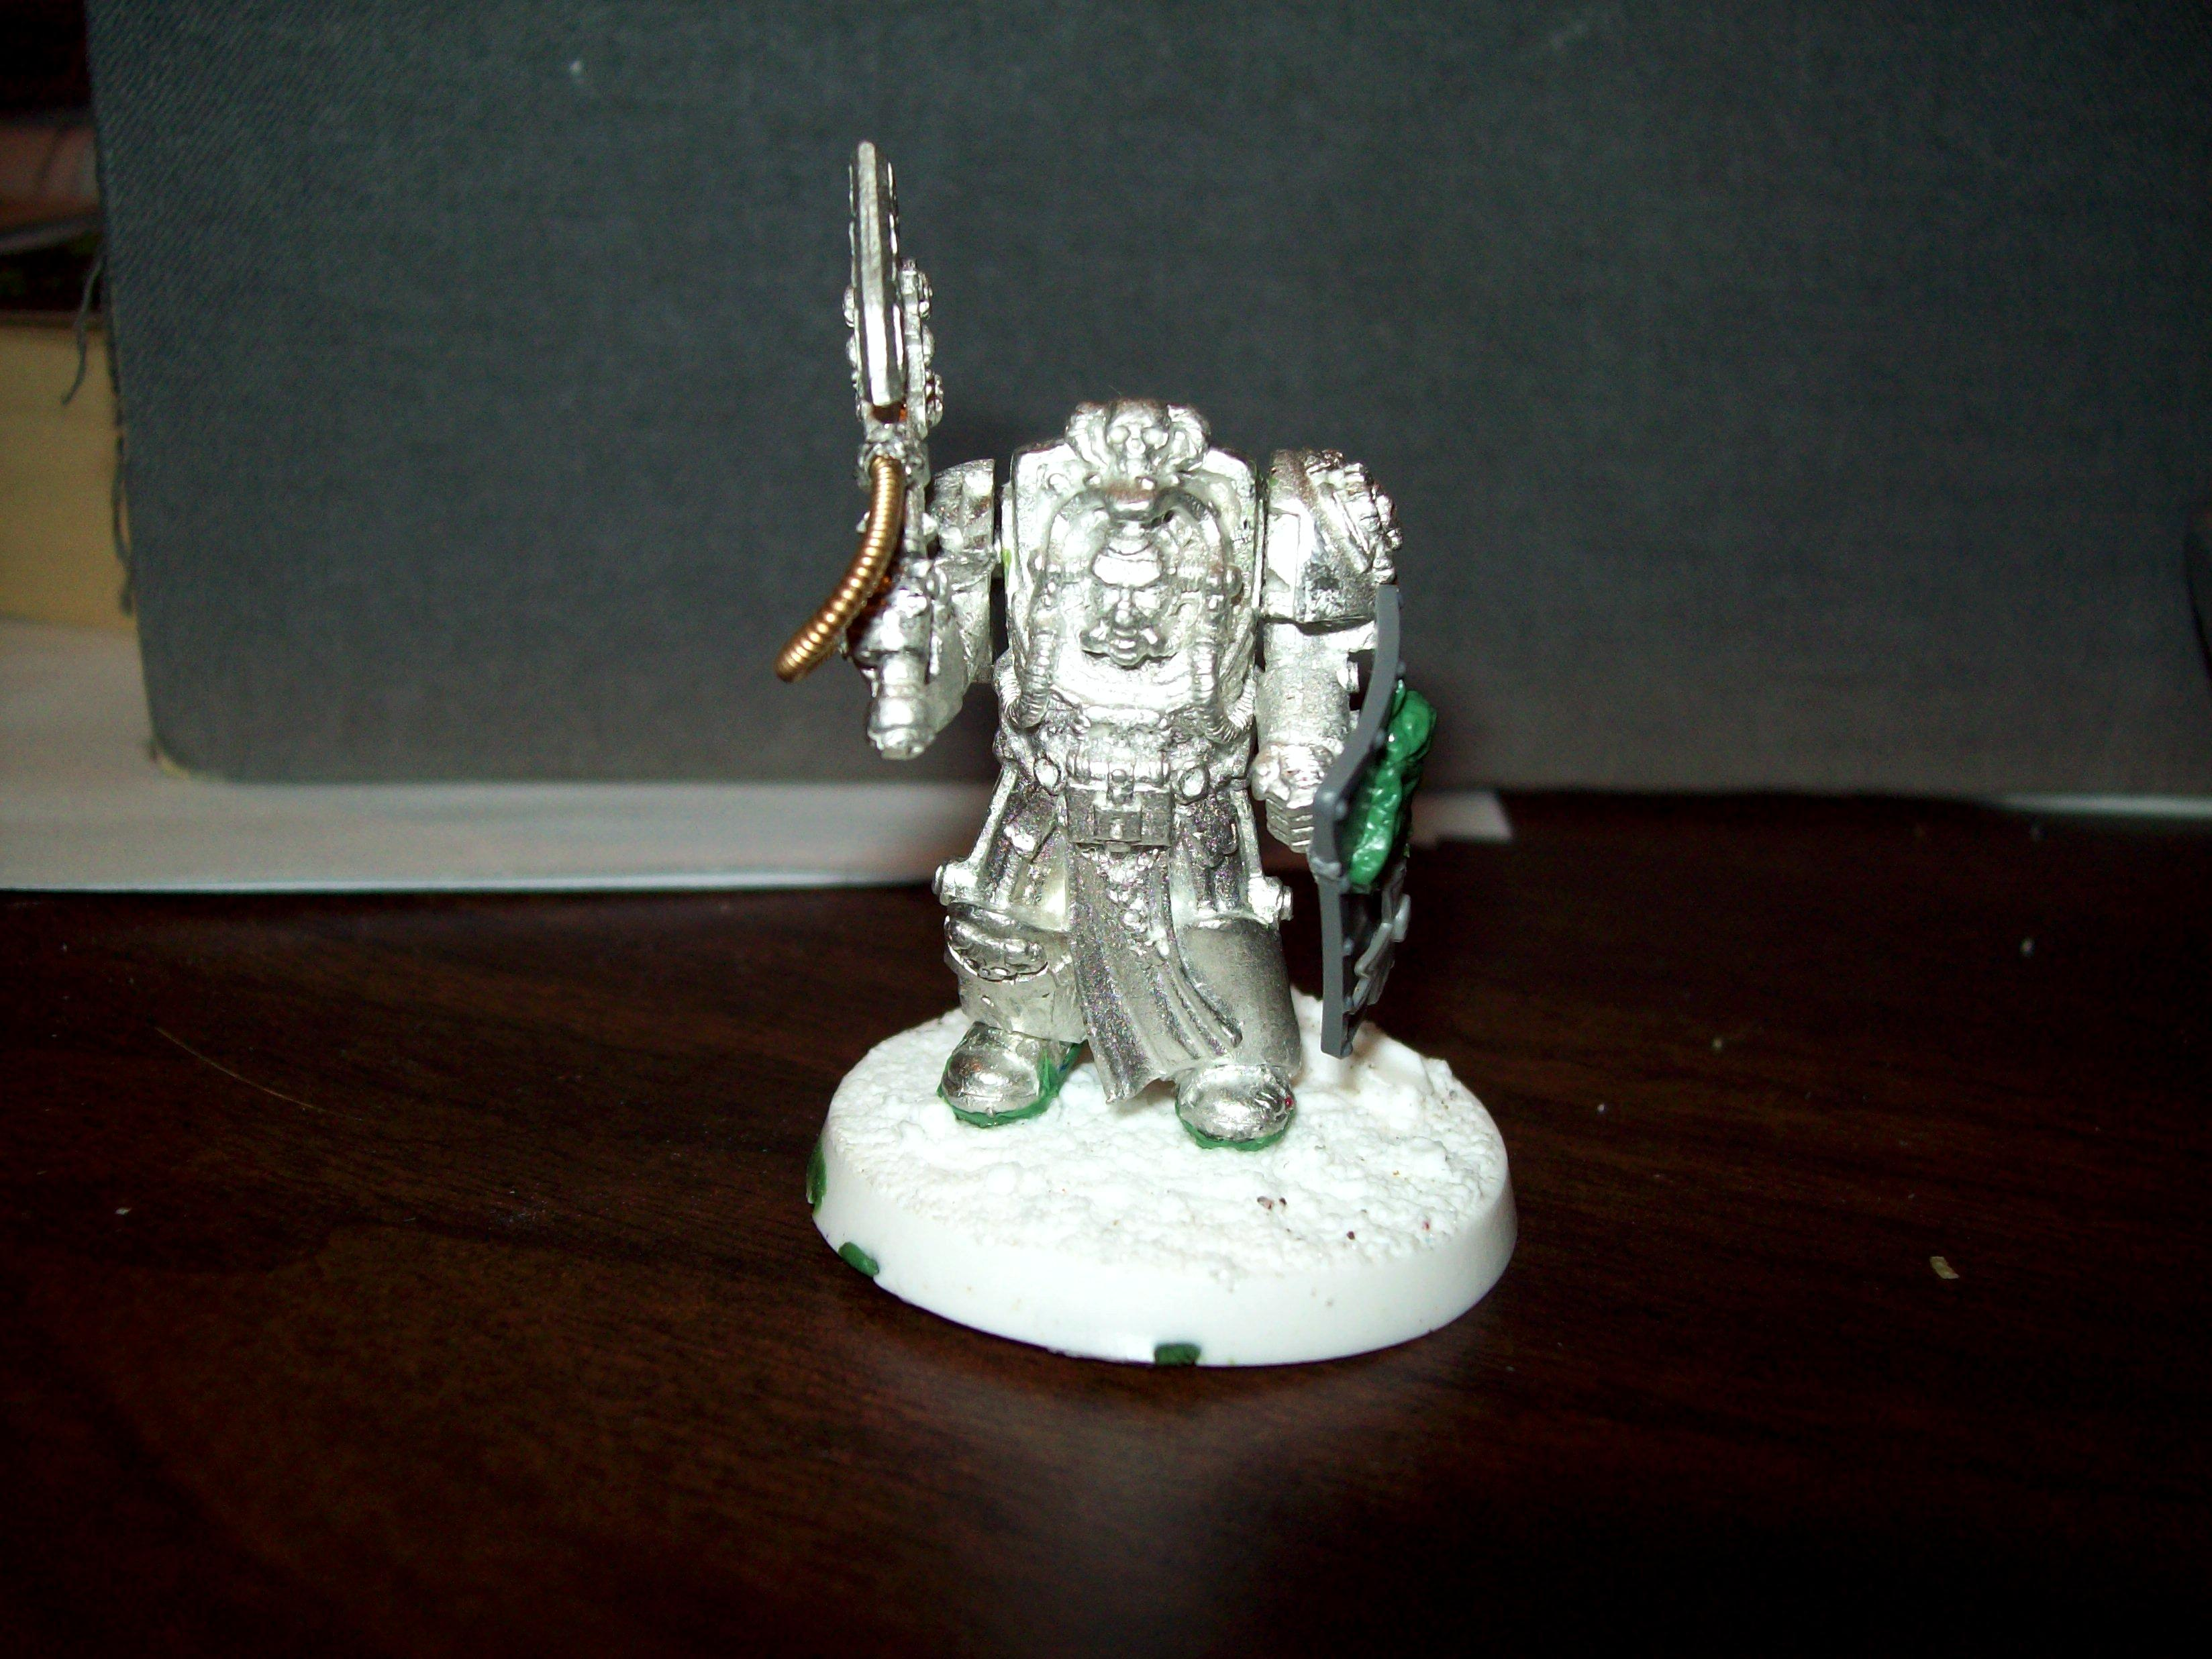 3rd Company, Celestial Lions, Converstion, Librarian, Space Marines, Warhammer 40,000